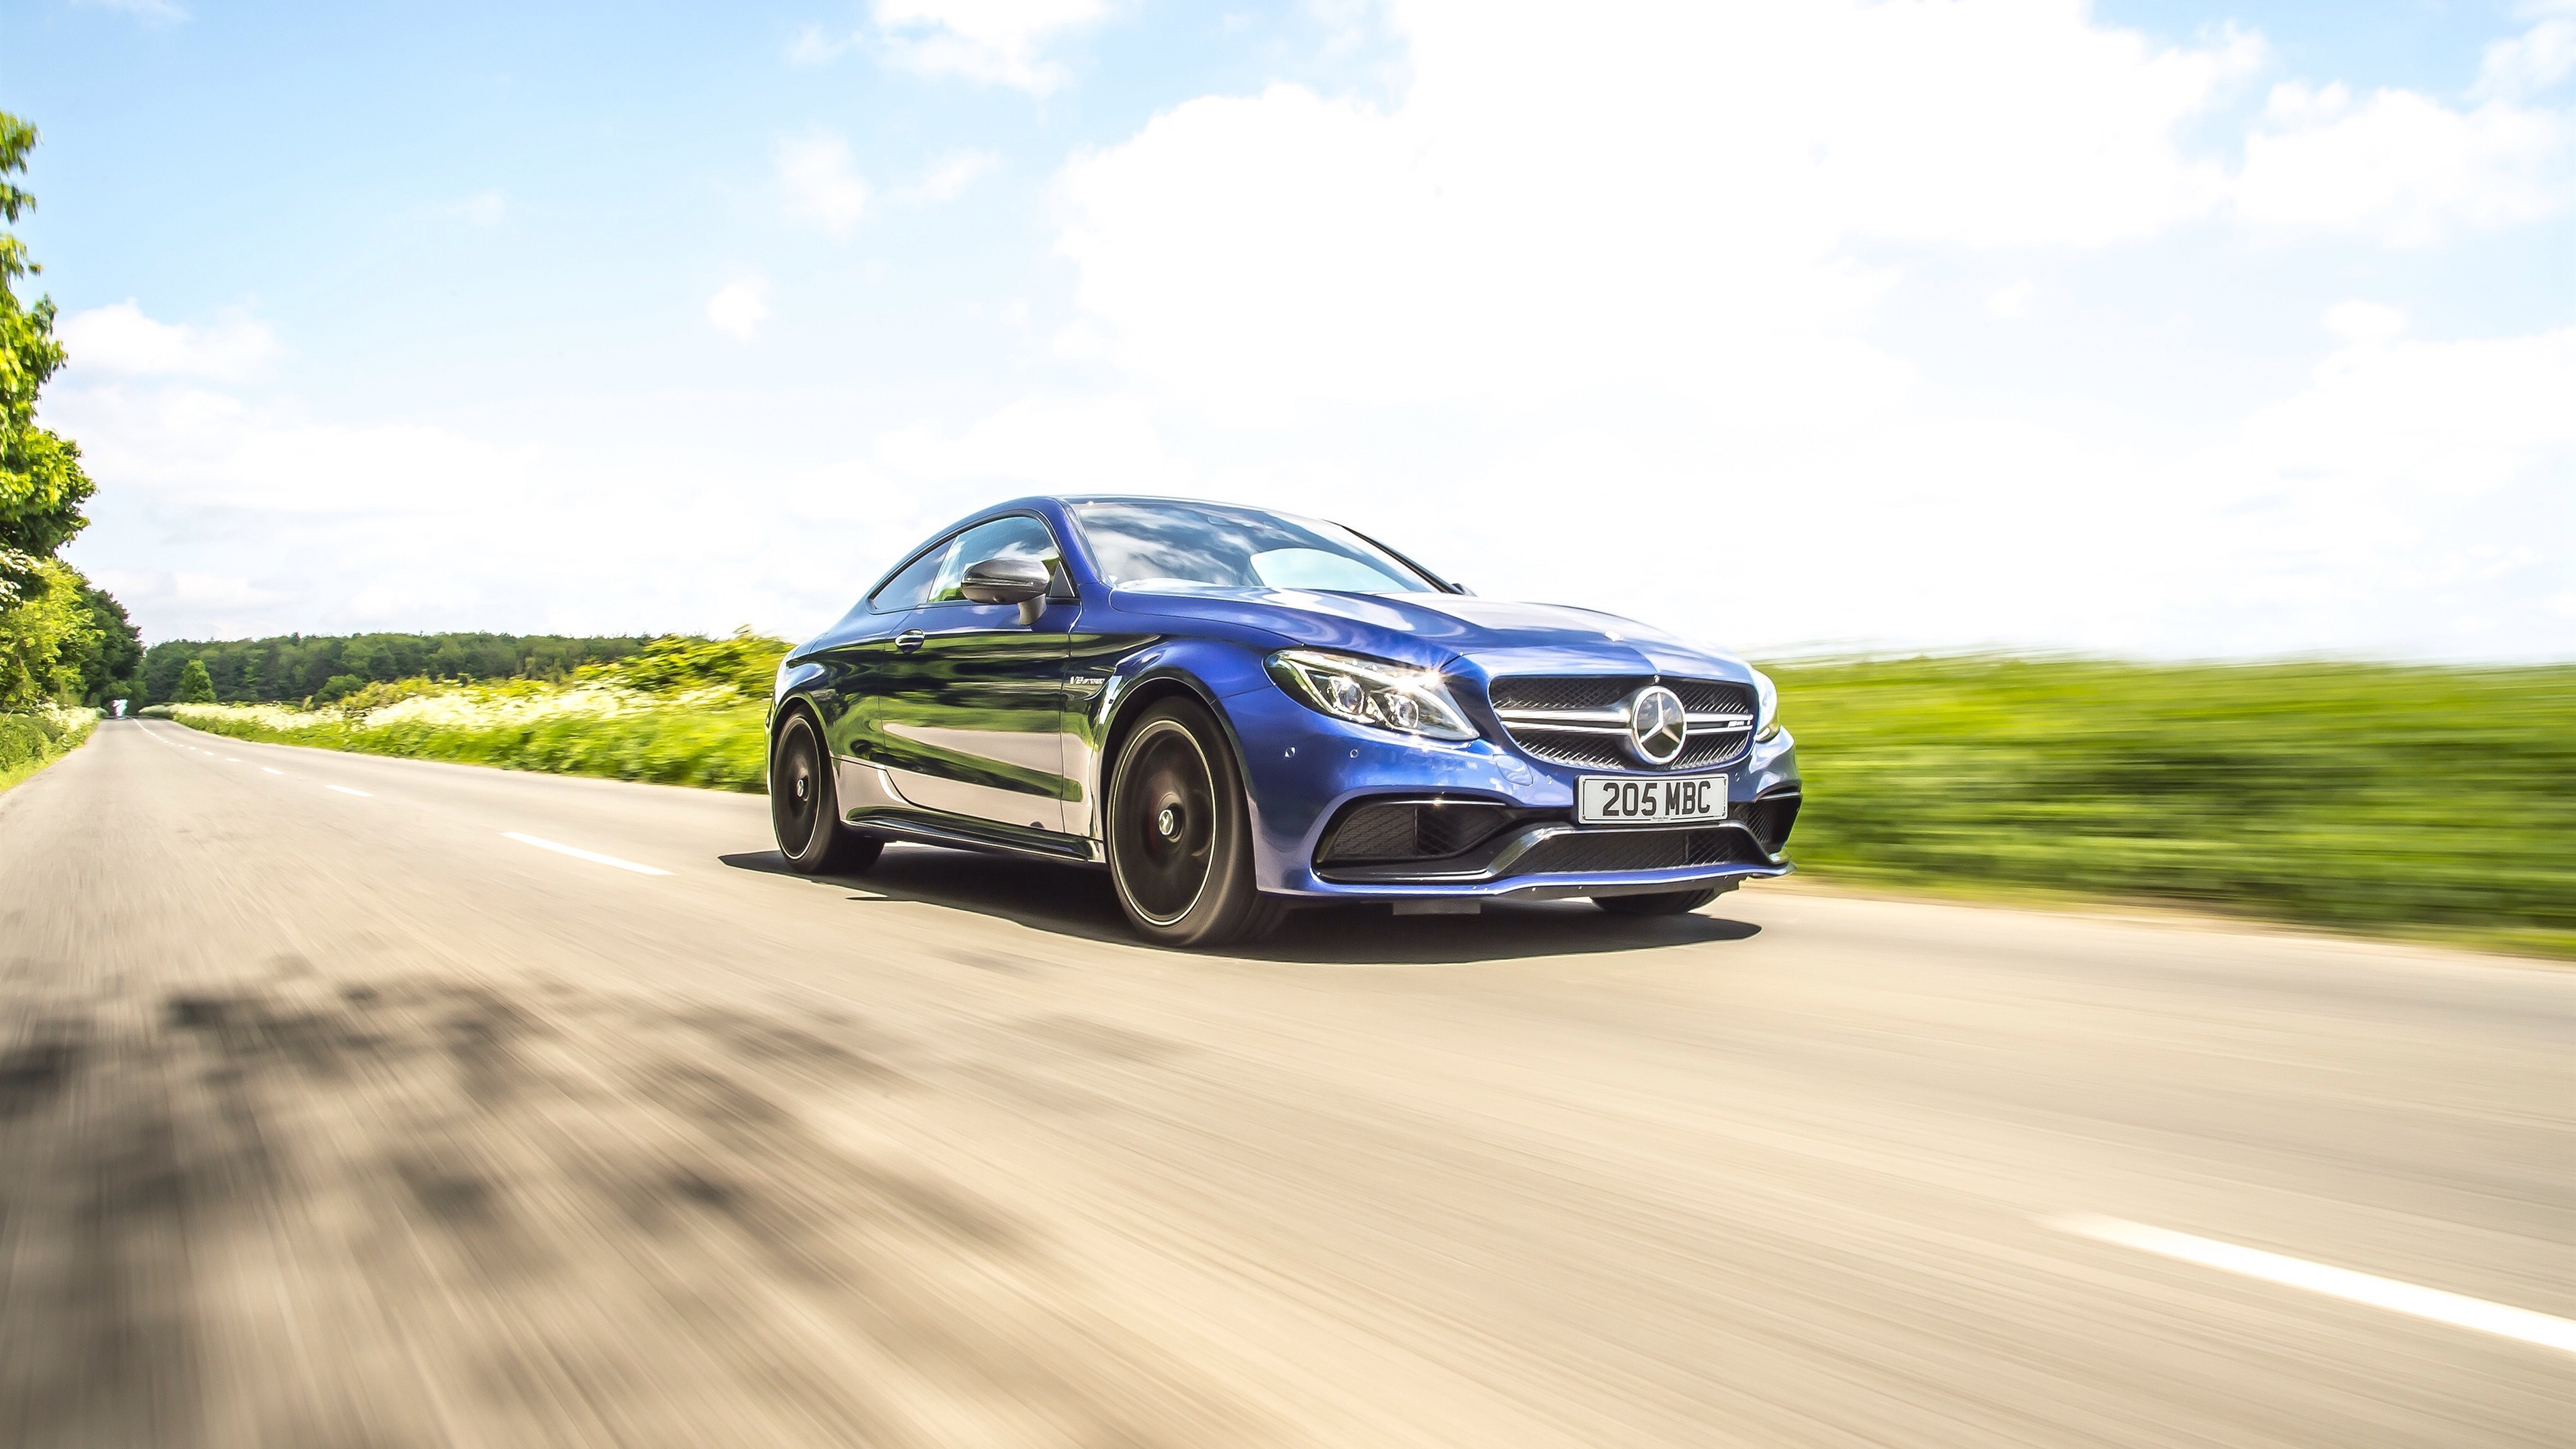 Wallpaper Mercedes Benz Amg C63 Blue Coupe Speed 3840x2160